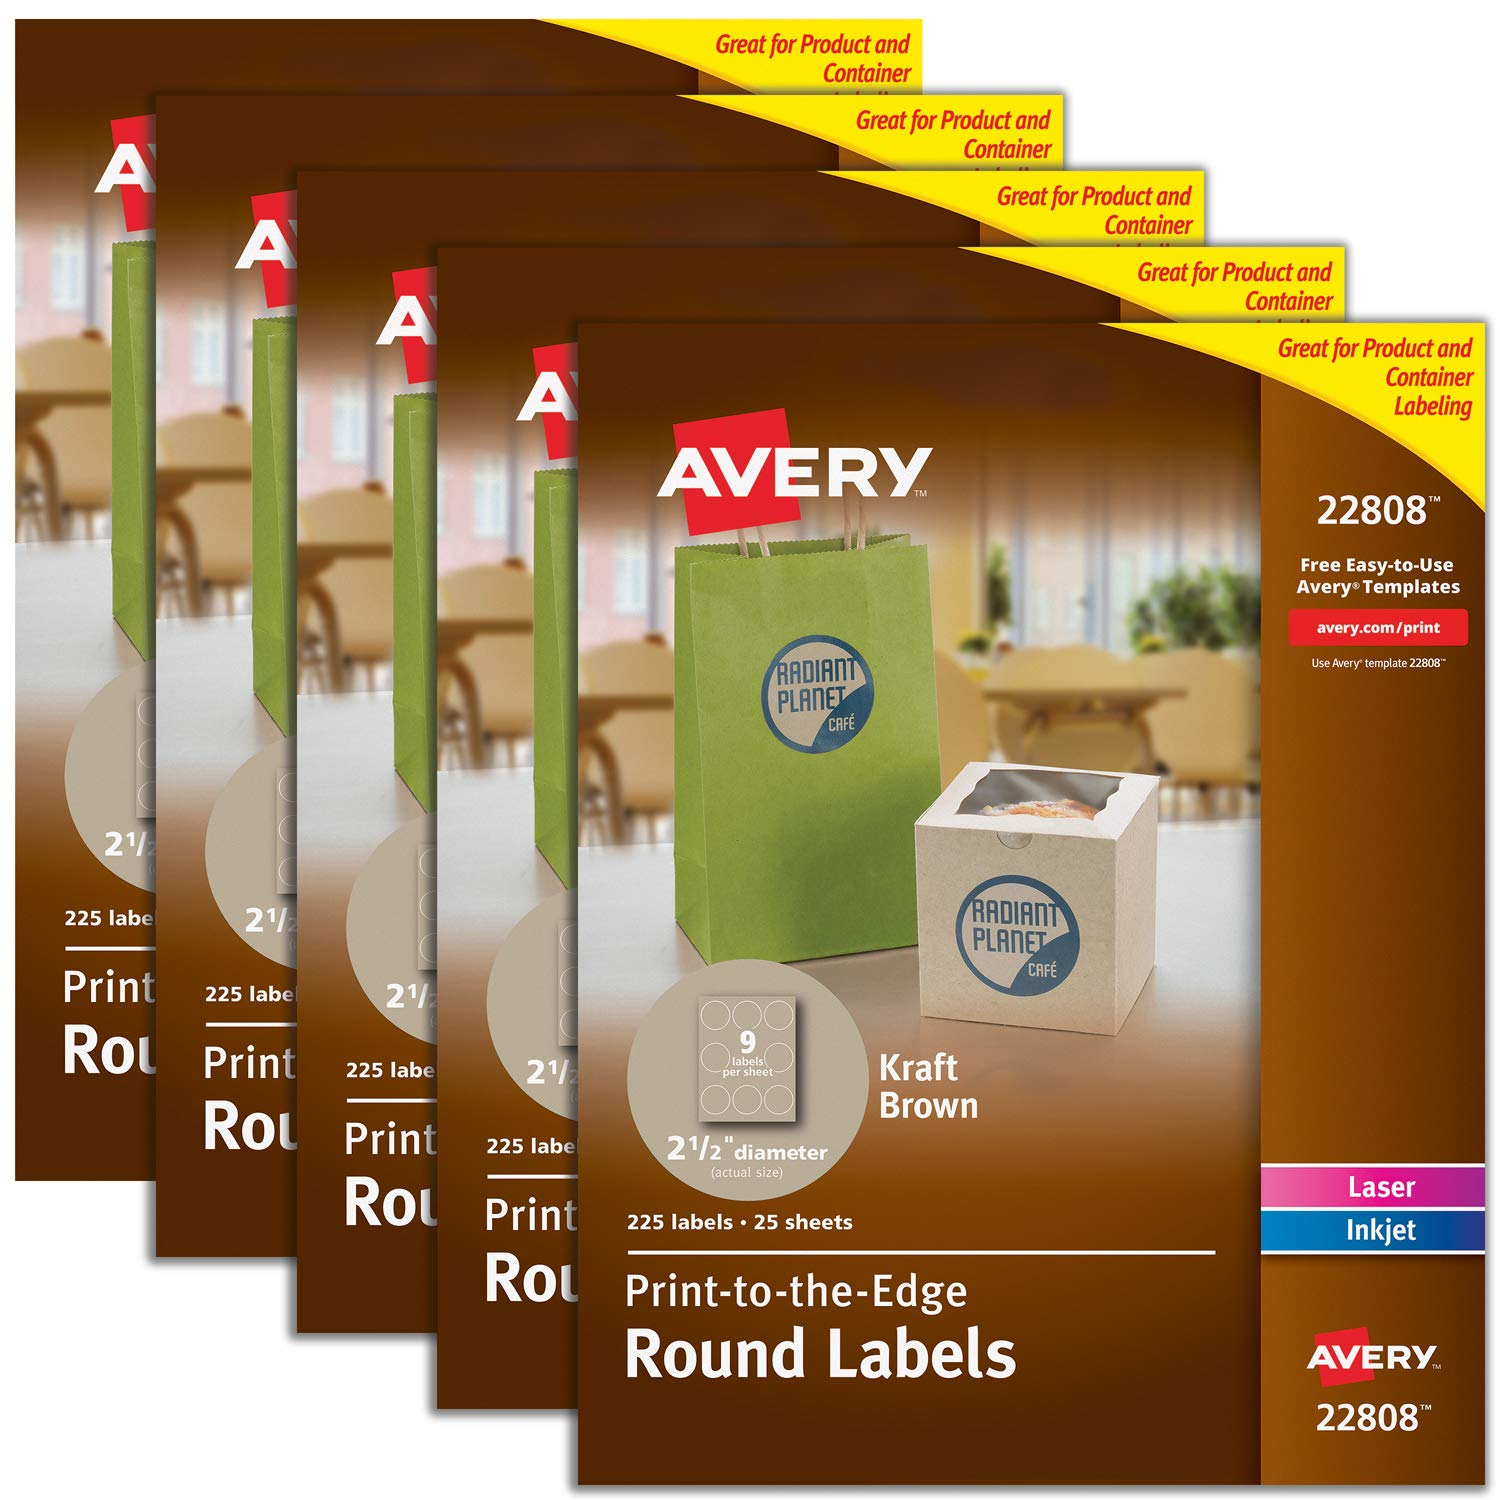 Avery Round Labels for Laser & Inkjet Printers, 2.5'', 5 Packs, 1,125 Labels Total, Kraft Brown Labels (22808) by AVERY